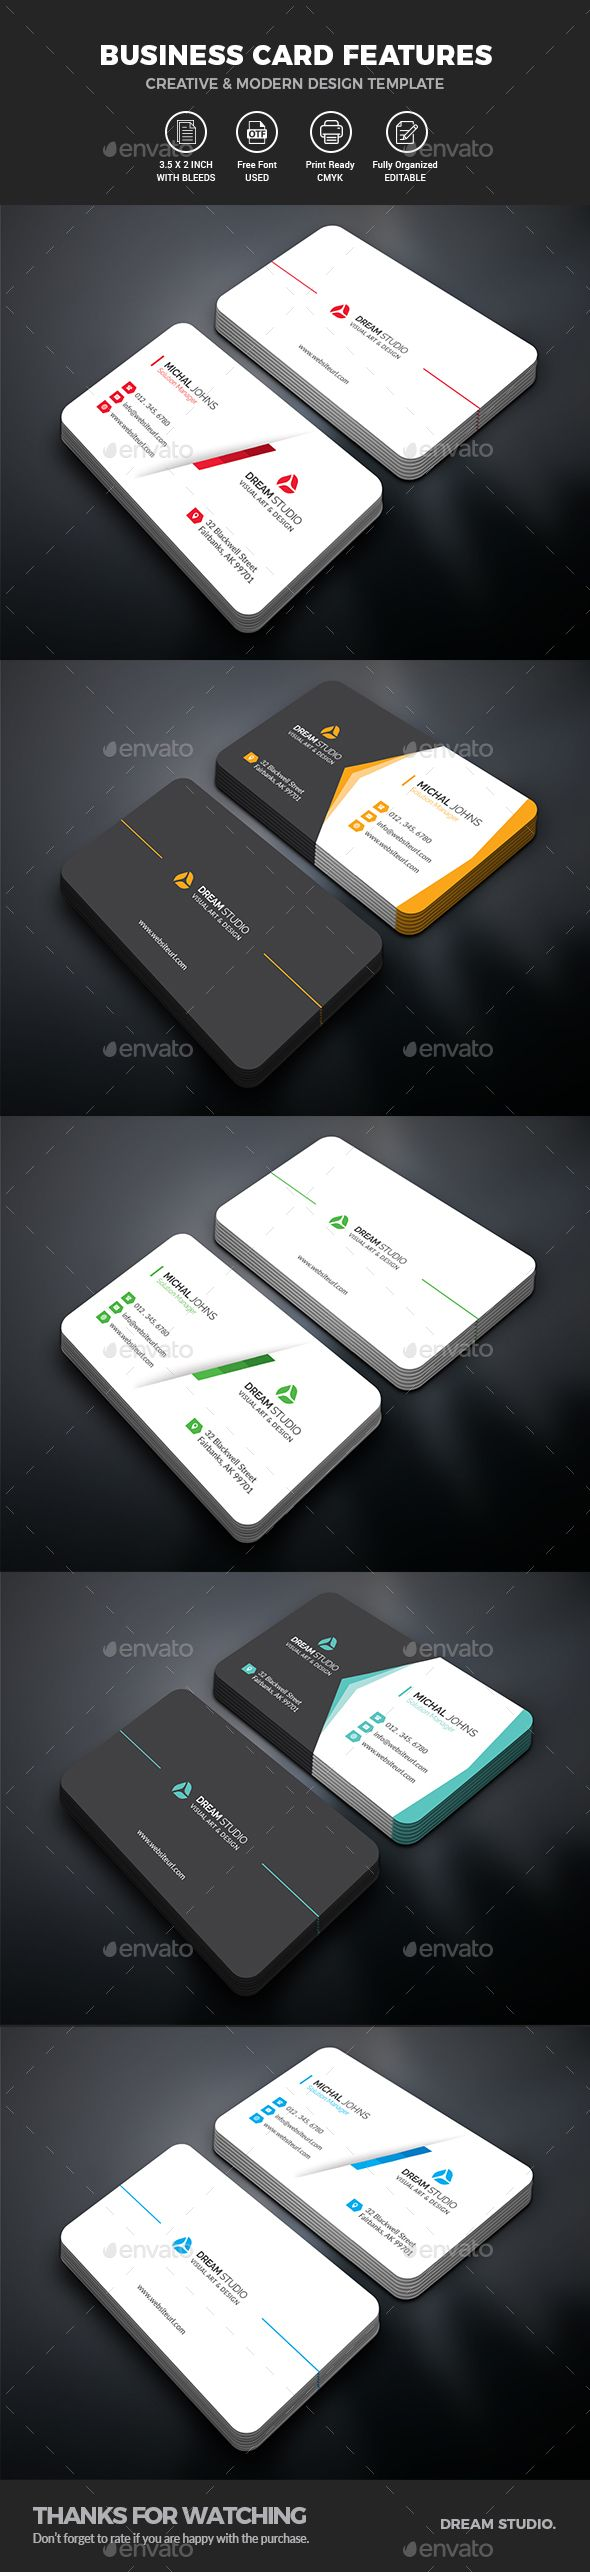 25+ unique High quality business cards ideas on Pinterest   Buy ...